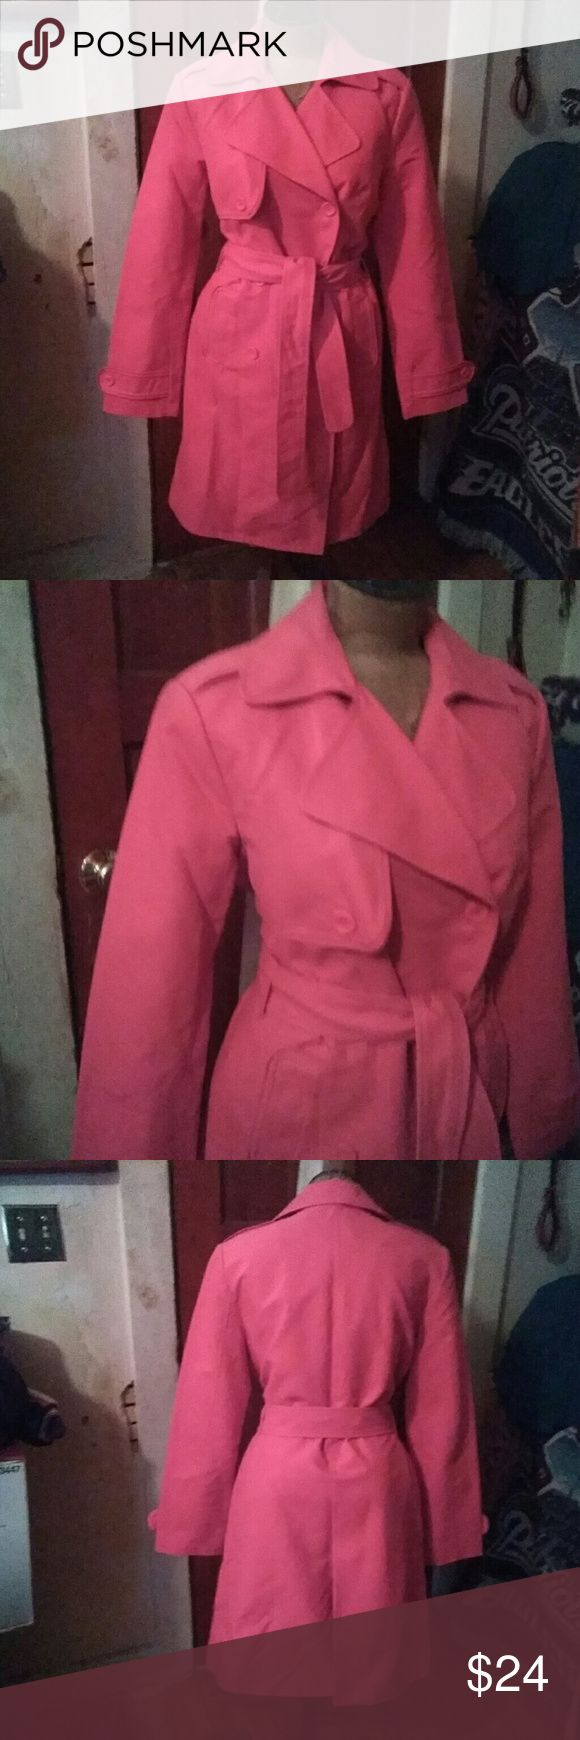 """Womens pink short belted spring rain trench coat M Womens pre-owned Will Smith trench in a gorgeous pink! Size M. Comes to above the knee on me & I'm 5'5"""". Only worn a few times, excellent condition. Willi Smith Jackets & Coats Trench Coats"""